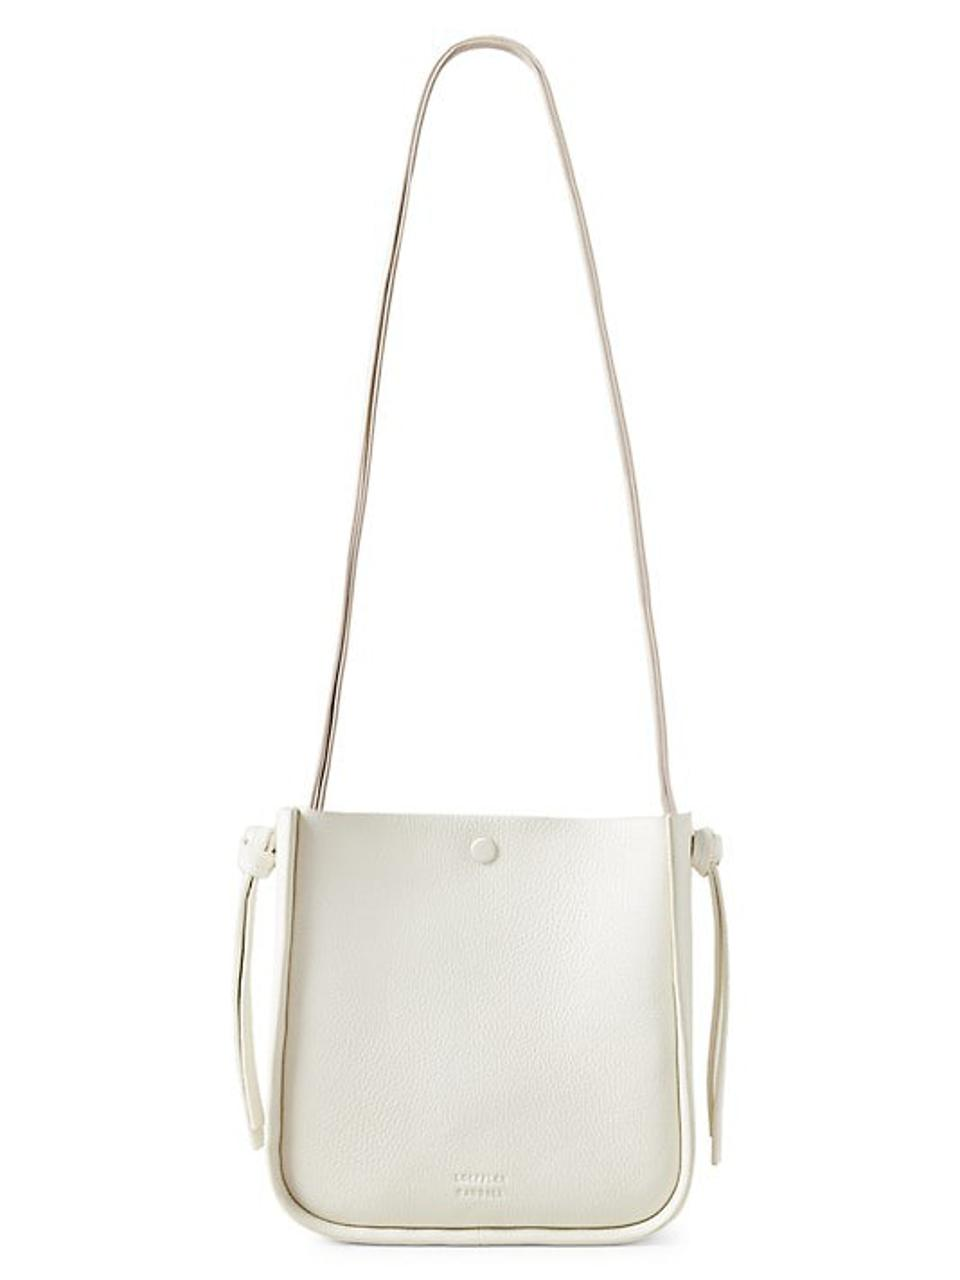 Loeffler Randall Turned Out Knot Crossbody Bag